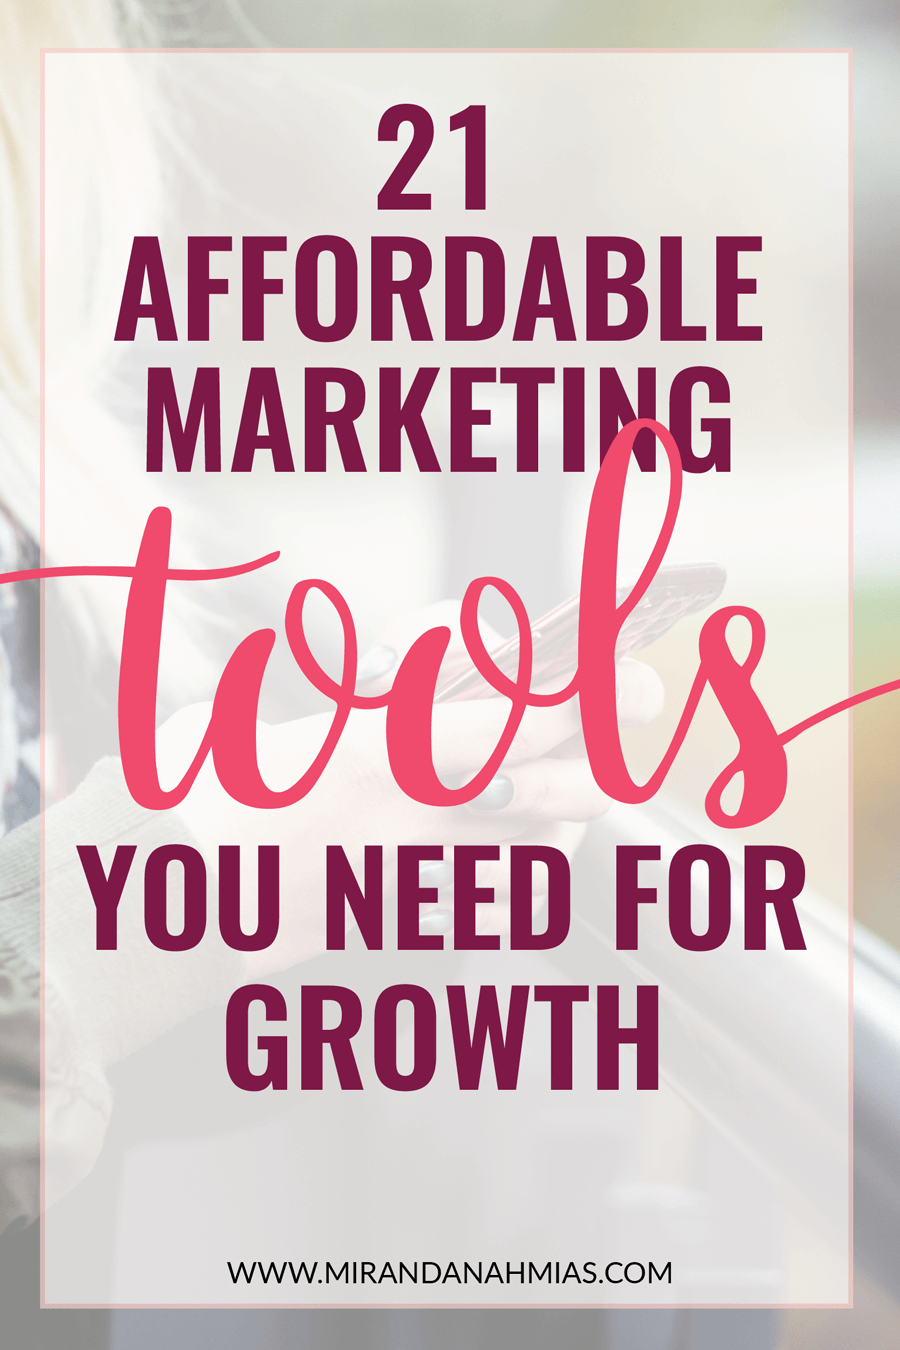 21 Affordable Marketing Tools Your Business Needs for Growth! These tools helped me reach $10,000 per month. | Miranda Nahmias & Co. — Clients, Systems, Marketing